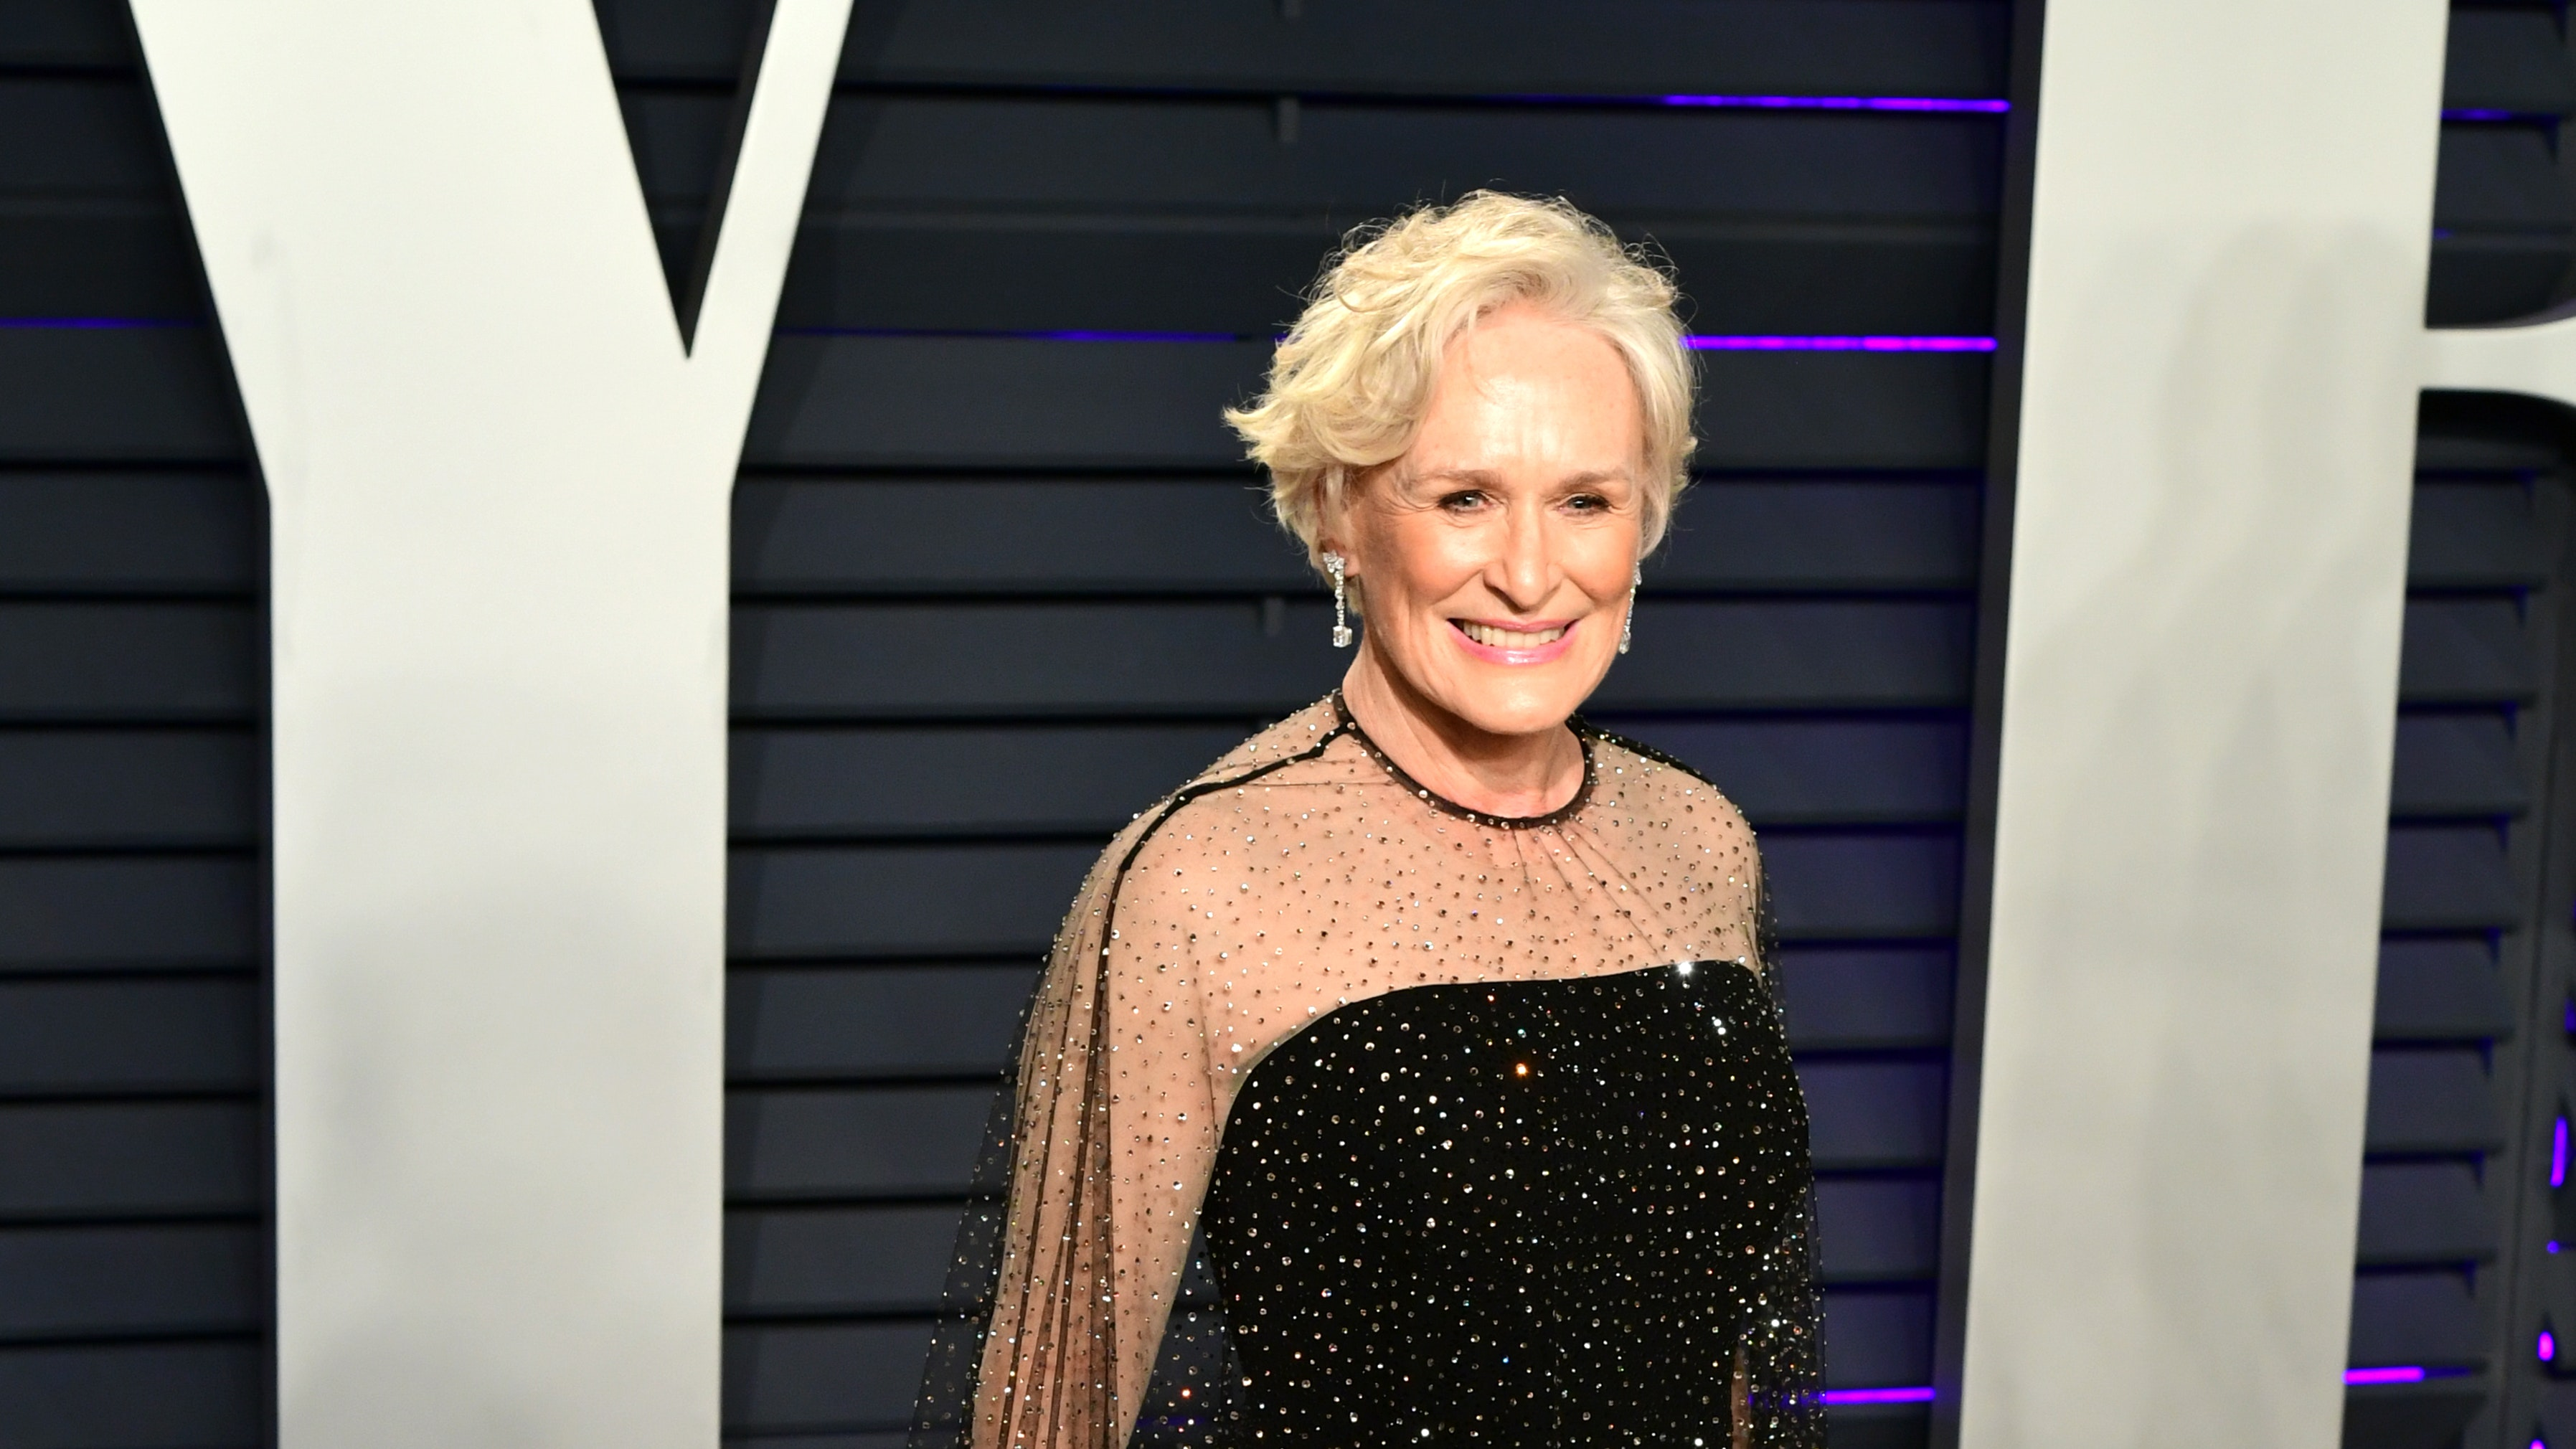 http://home.bt.com/images/hollywood-star-glenn-close-leads-celebrity-tributes-to-notre-dame-cathedral-136435565419502601-190416094033.jpg